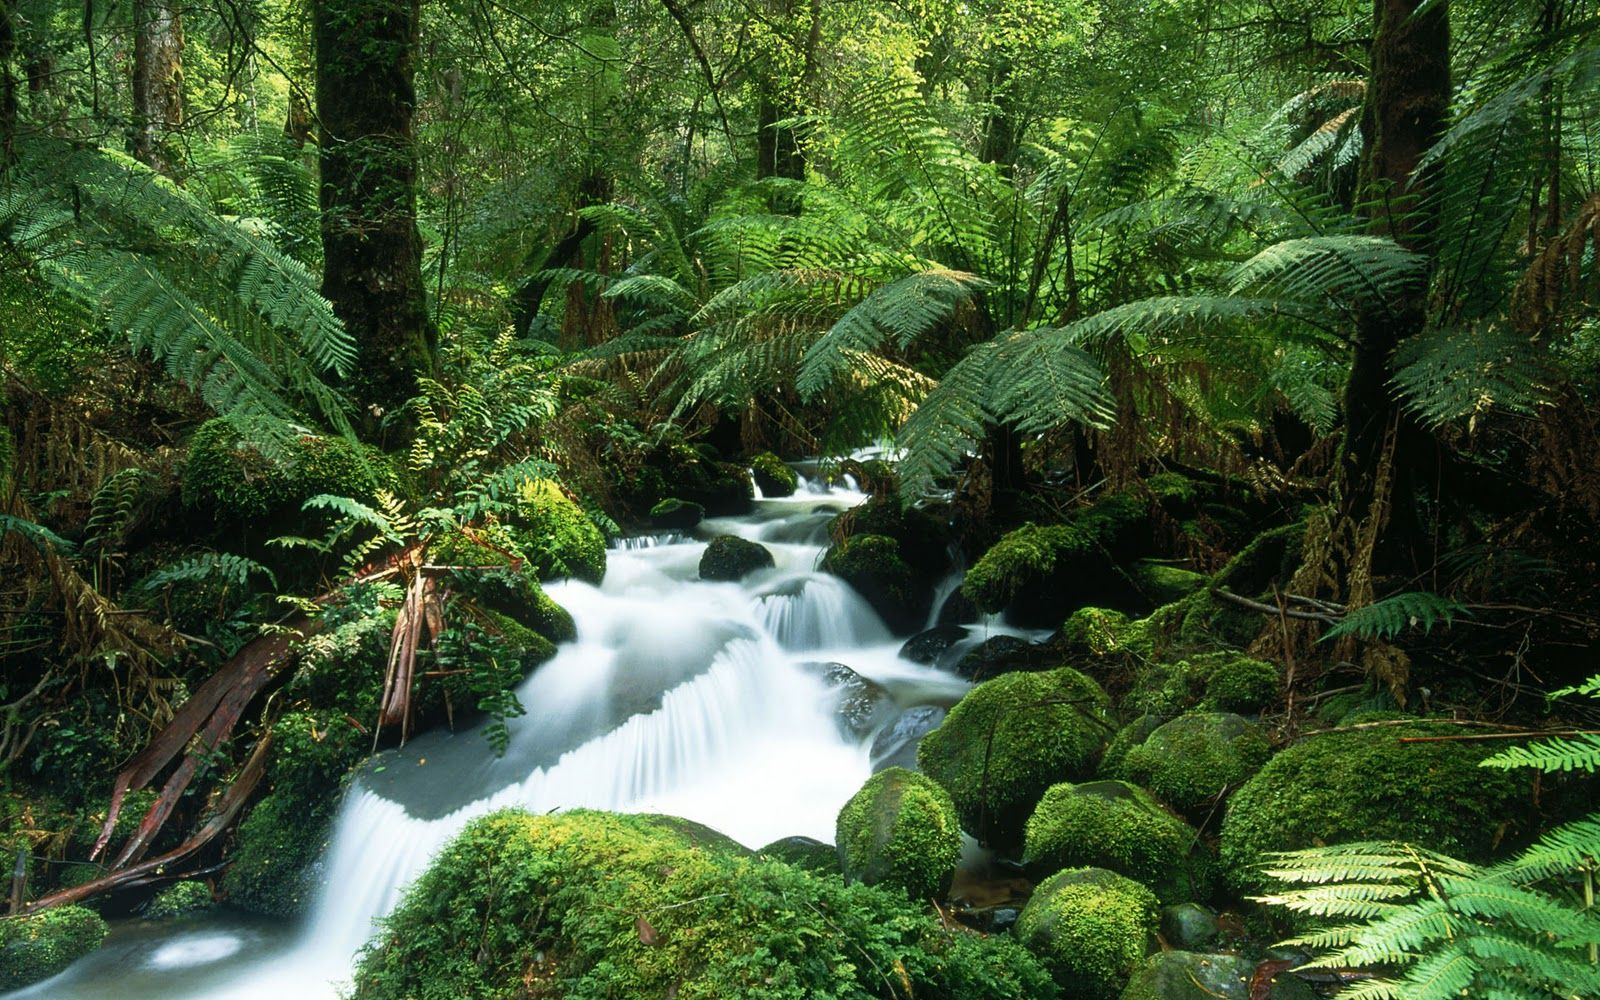 Tropical Rainforest Background Images Free Rainforest Pictures Rainforest Plants Jungle Images